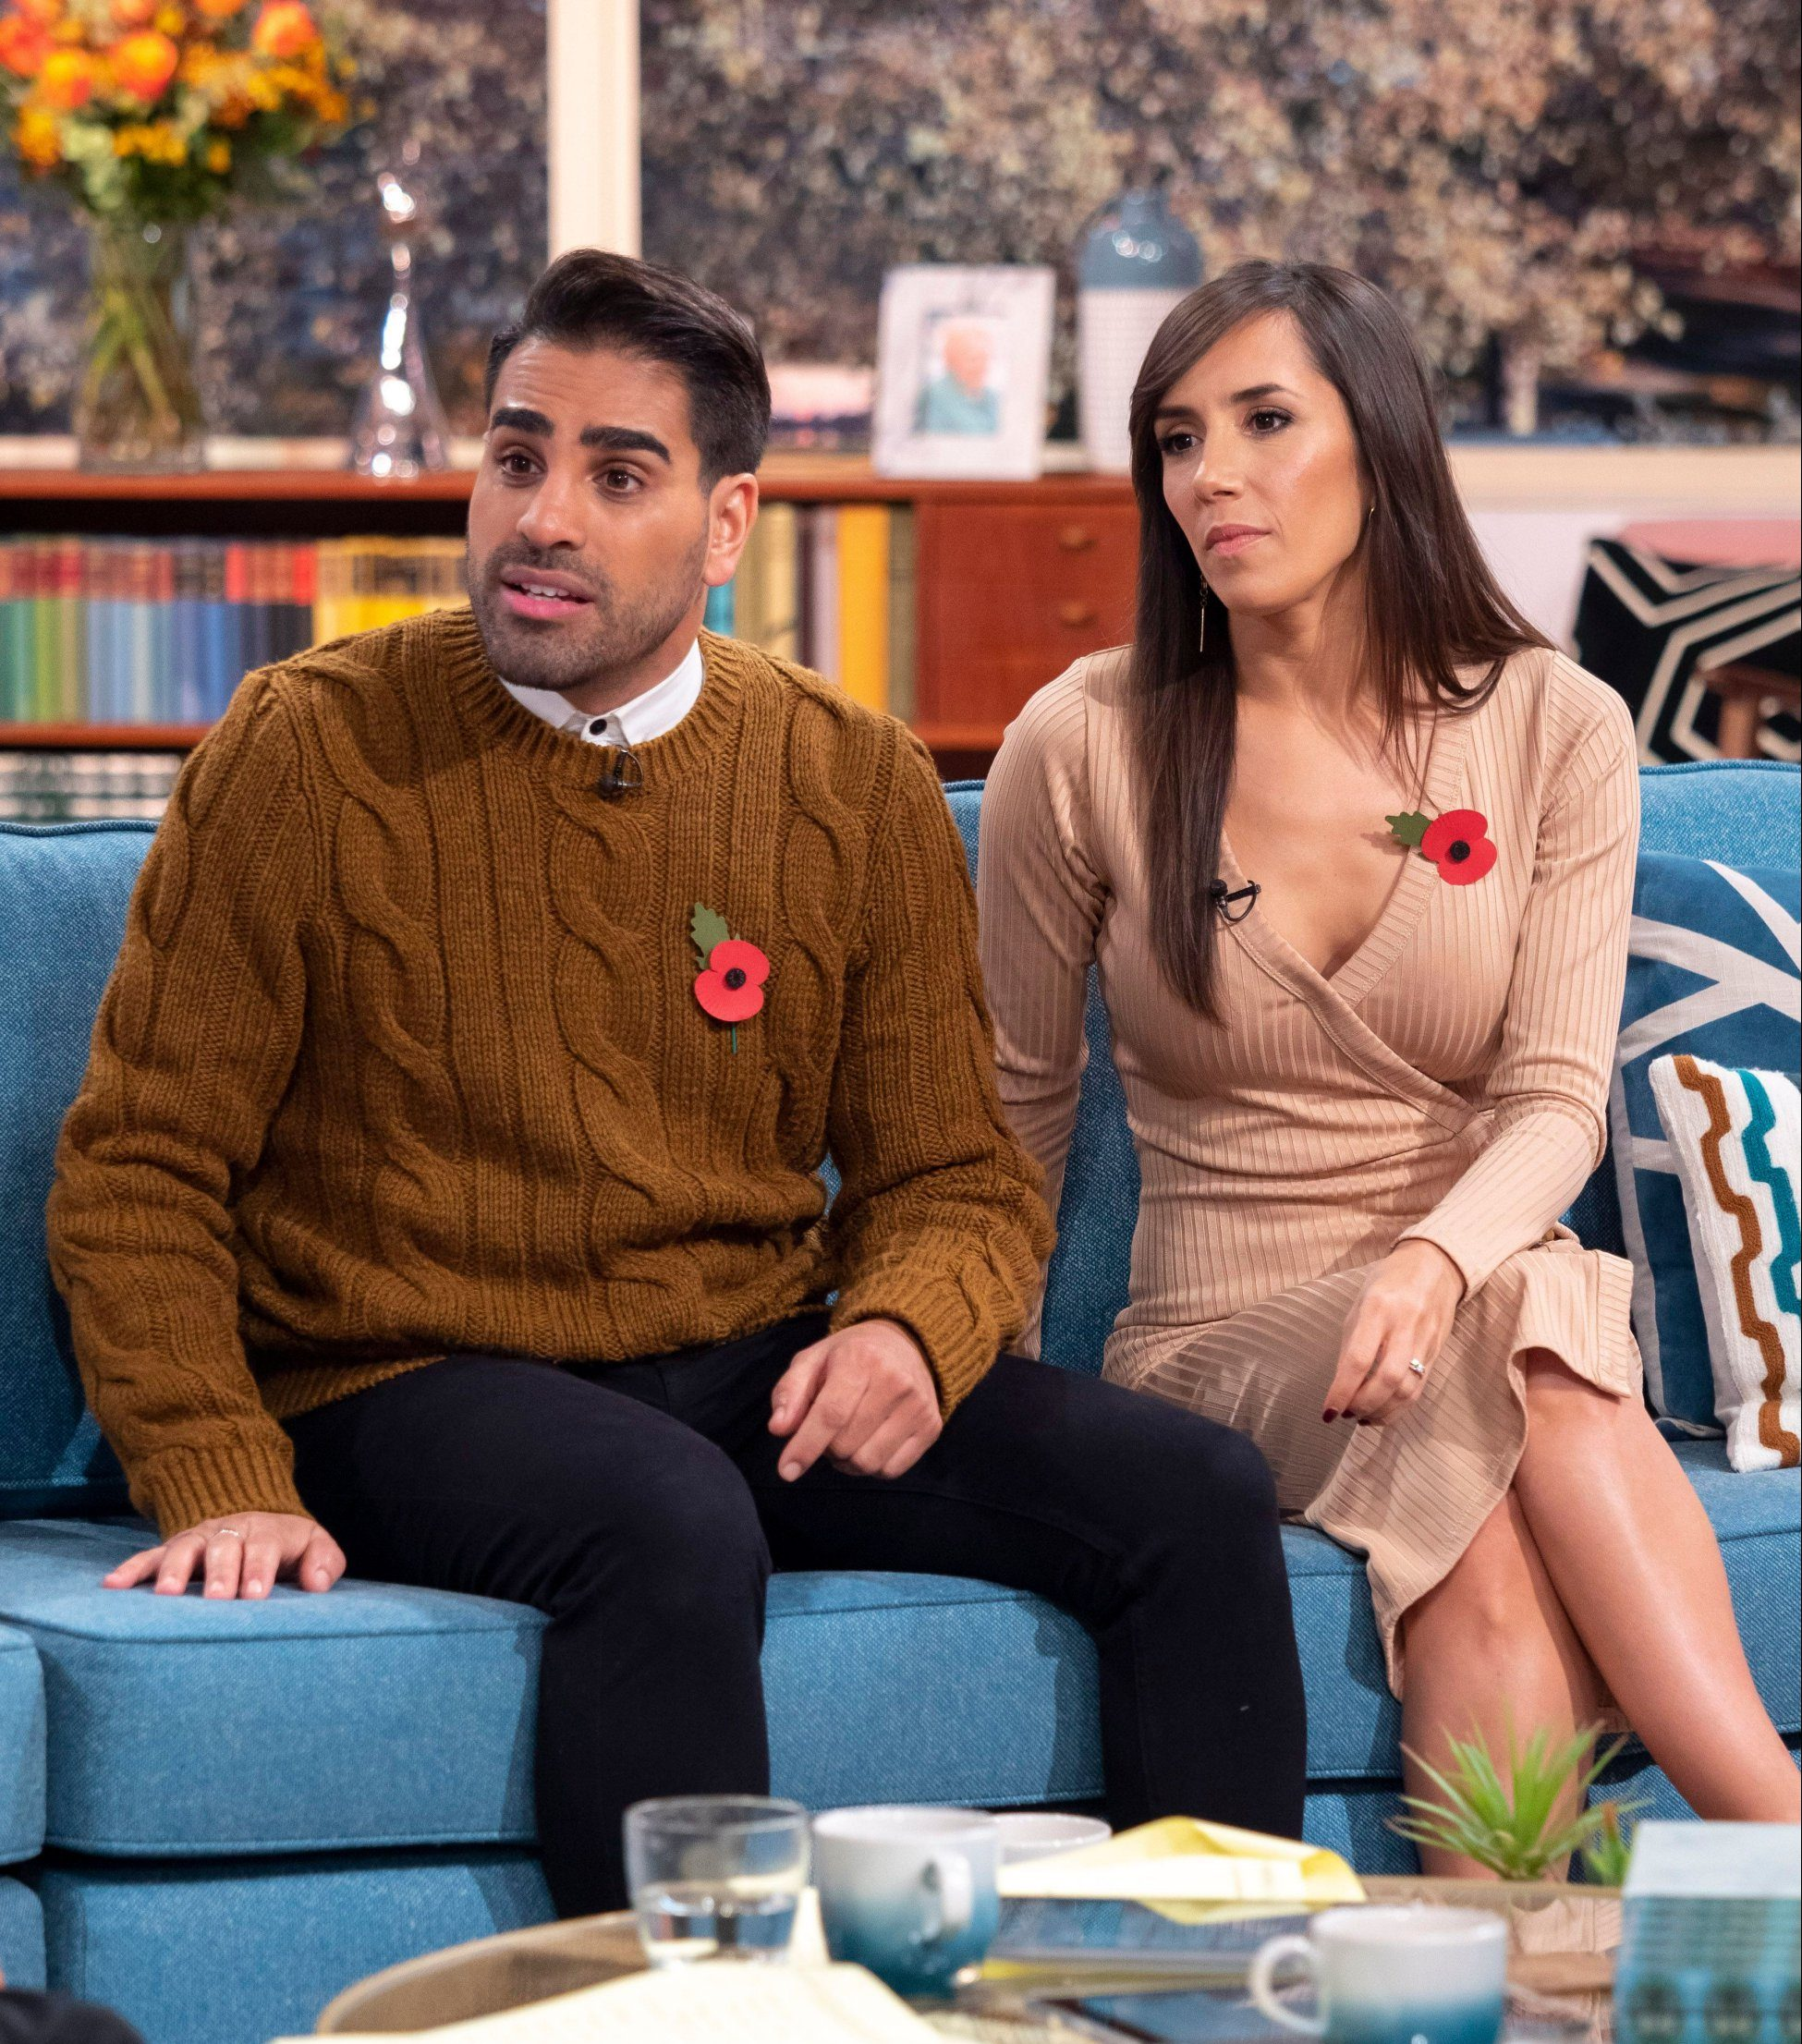 Editorial use only Mandatory Credit: Photo by Ken McKay/ITV/REX (9955016ae) Dr Ranj and Janette Manrara 'This Morning' TV show, London, UK - 01 Nov 2018 From the green room to the dance floor, our very own Dr Ranj & his dancing partner Janette Manrara join us in the studio to discuss everything on Strictly from anxiety struggles to starting on a high to ending up in the bottom of the leaderboard last week. But despite their recent low scores, the pocket rockets are determined to turn their fortunes around.